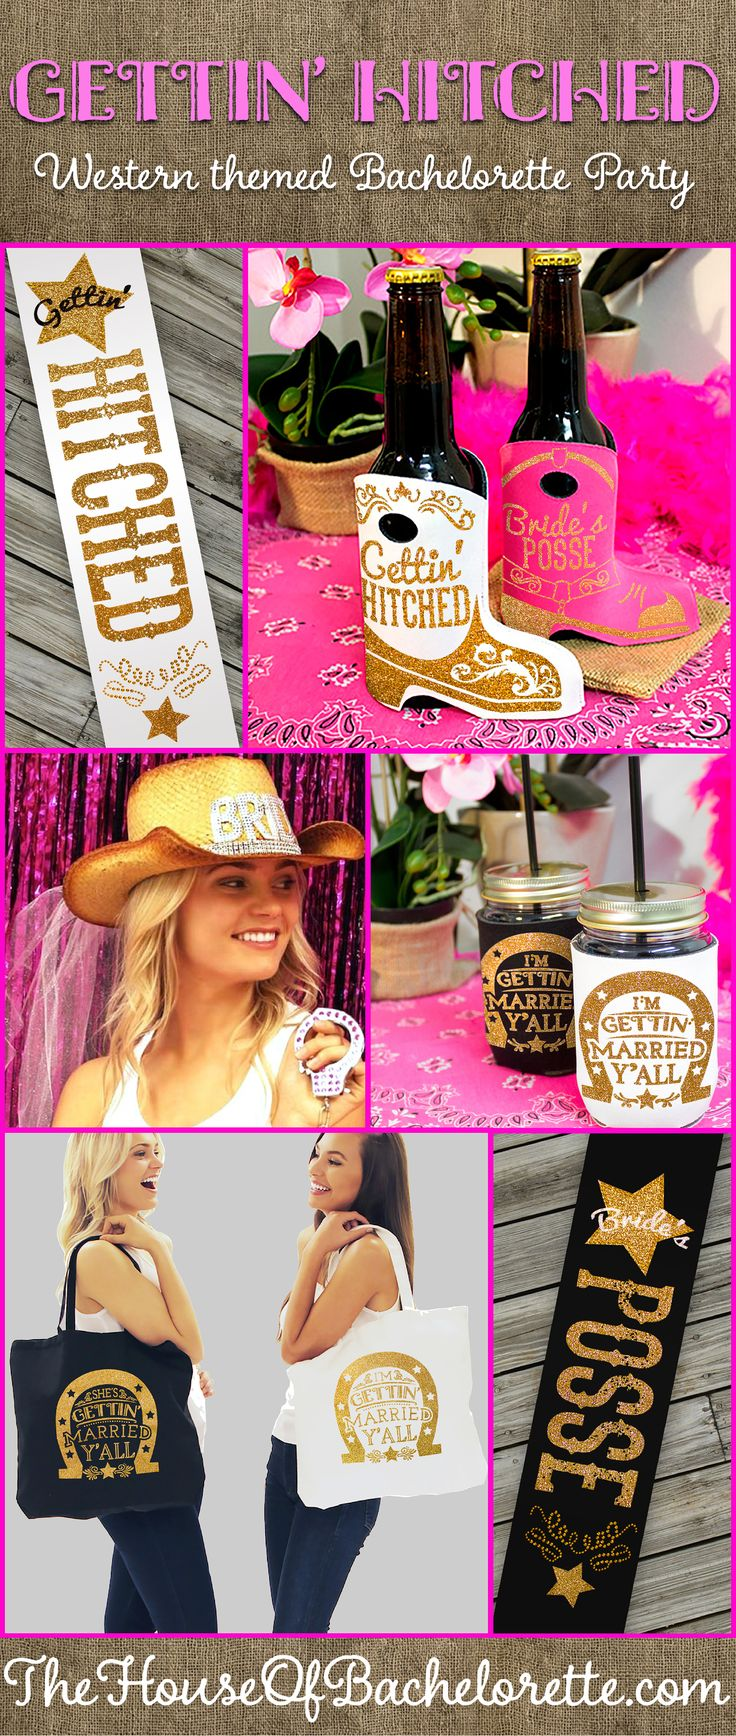 Country Western Theme Bachelorette Party Supplies & Ideas available exclusively at The House of Bachelorette